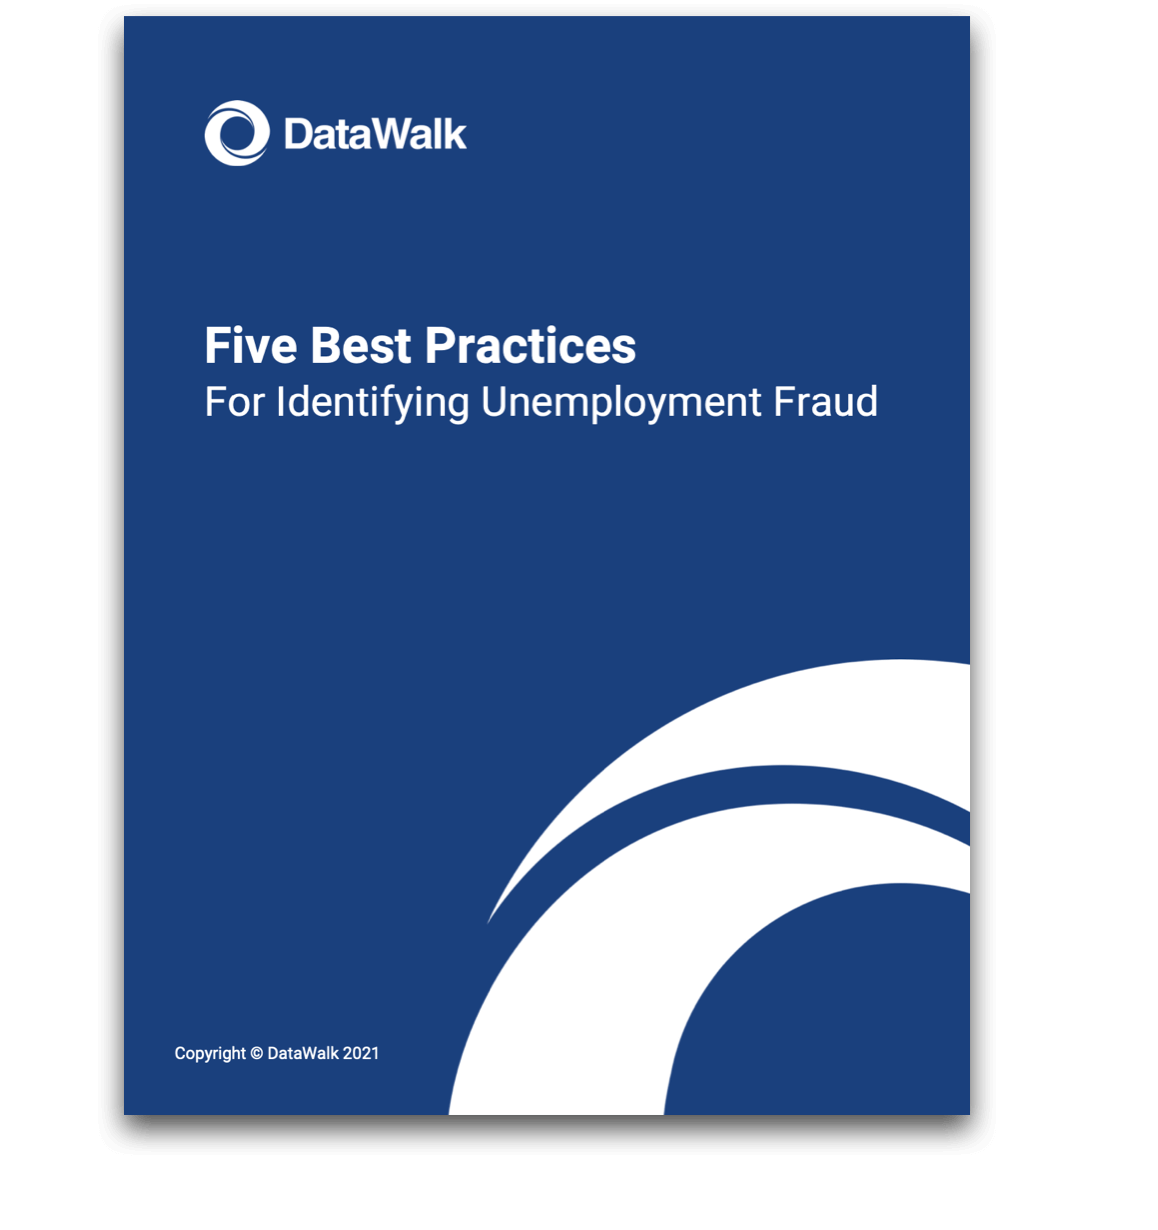 Five Best Practices For Identifying Unemployment Fraud